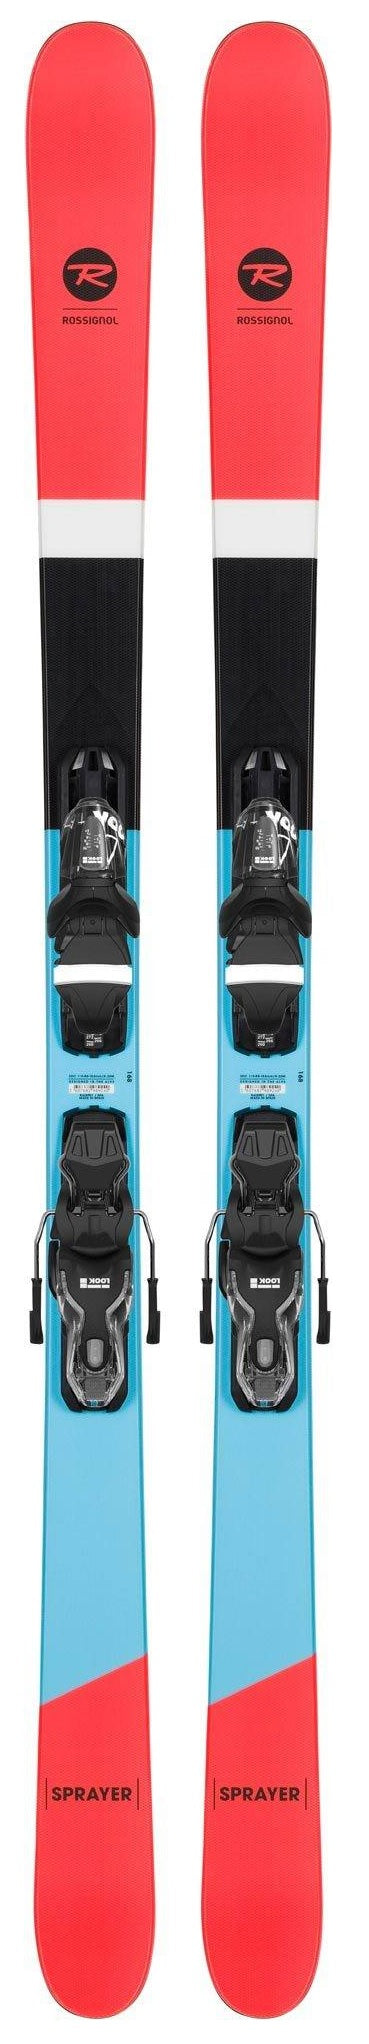 2020 Rossignol Sprayer snow skis with bindings - ProSkiGuy your Hometown Ski Shop on the web